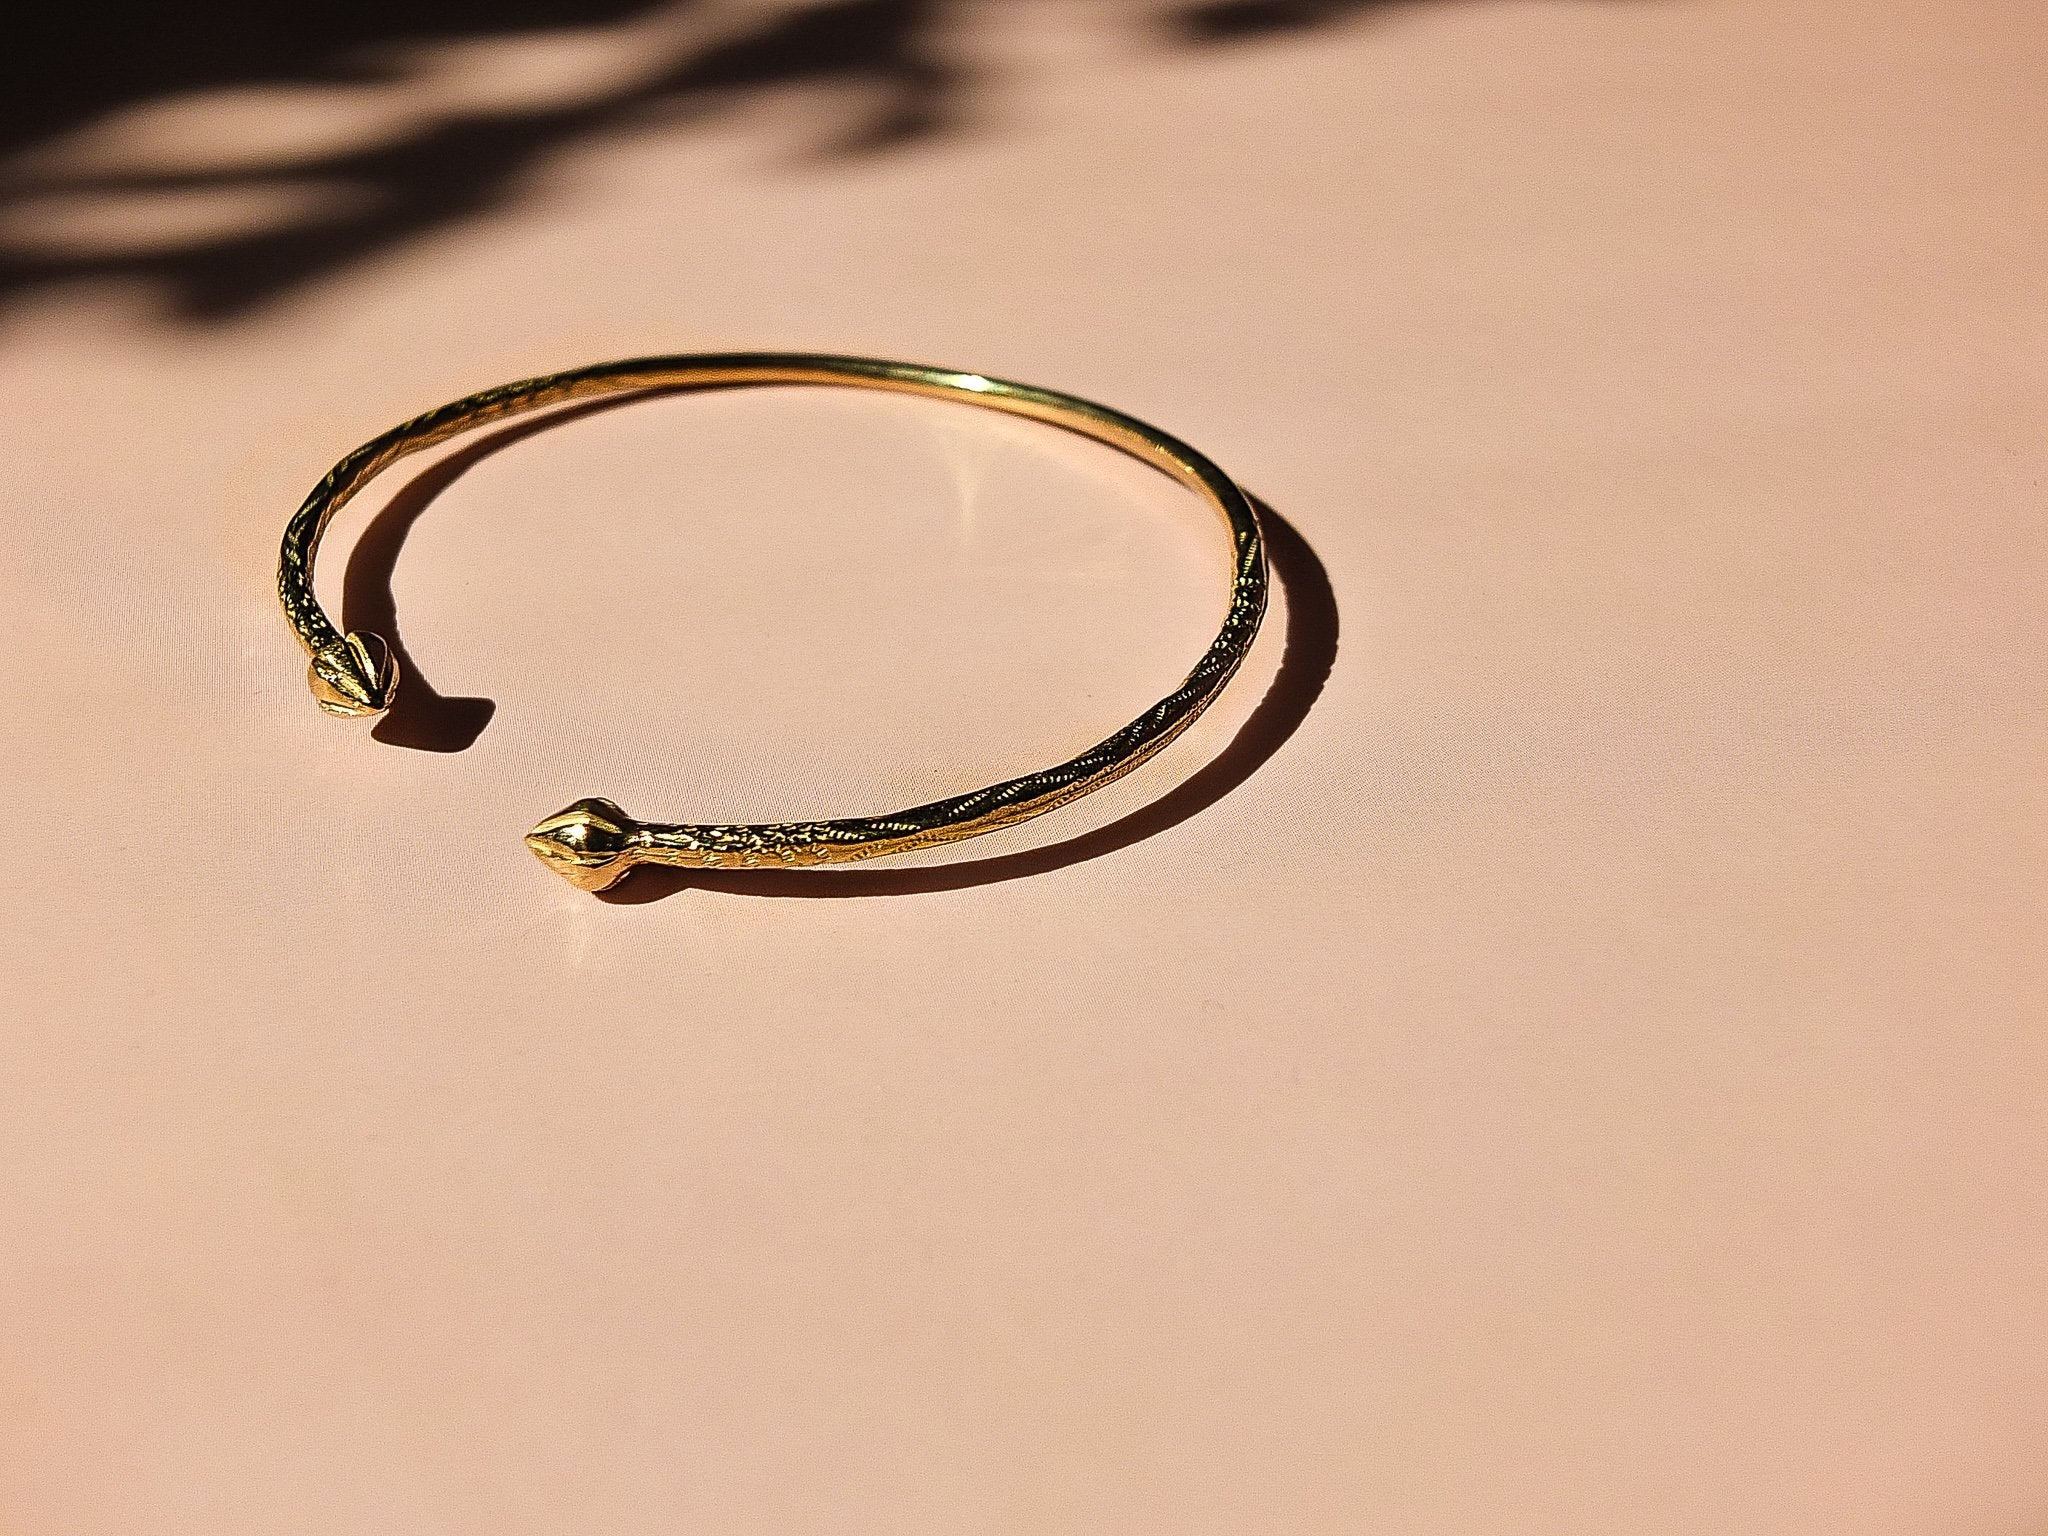 solid gold bangle, gold bangle, 10k gold bangle, handmade in toronto, cheap solid gold bangle